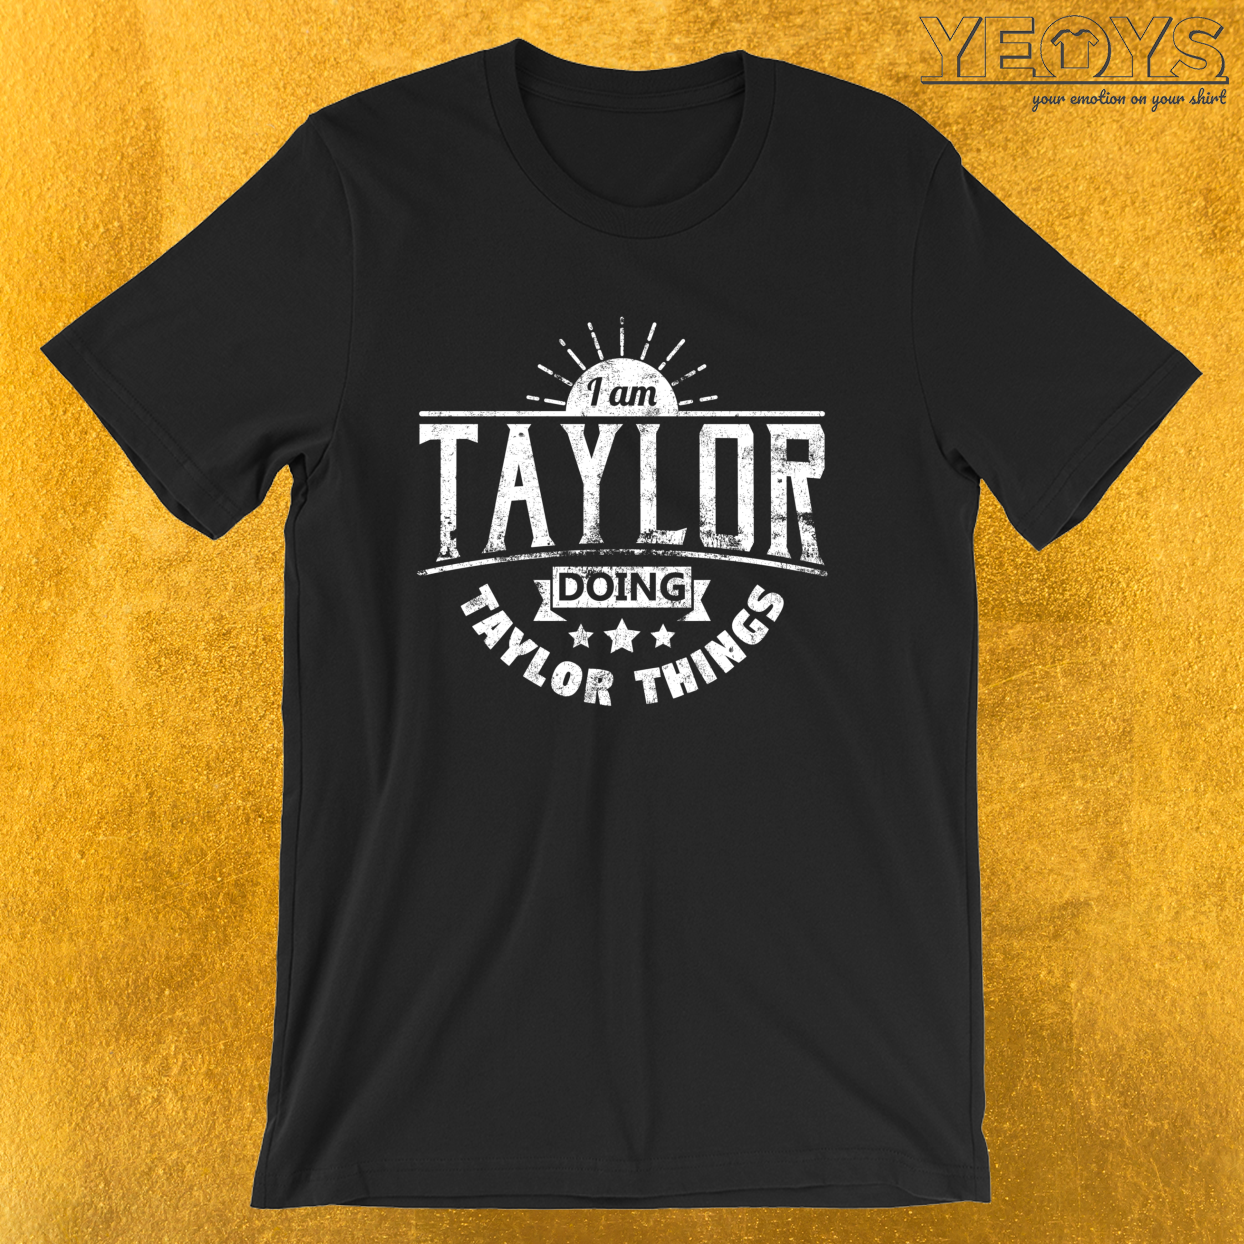 I Am Taylor Doing Taylor Things – Humorous Quotes Tee